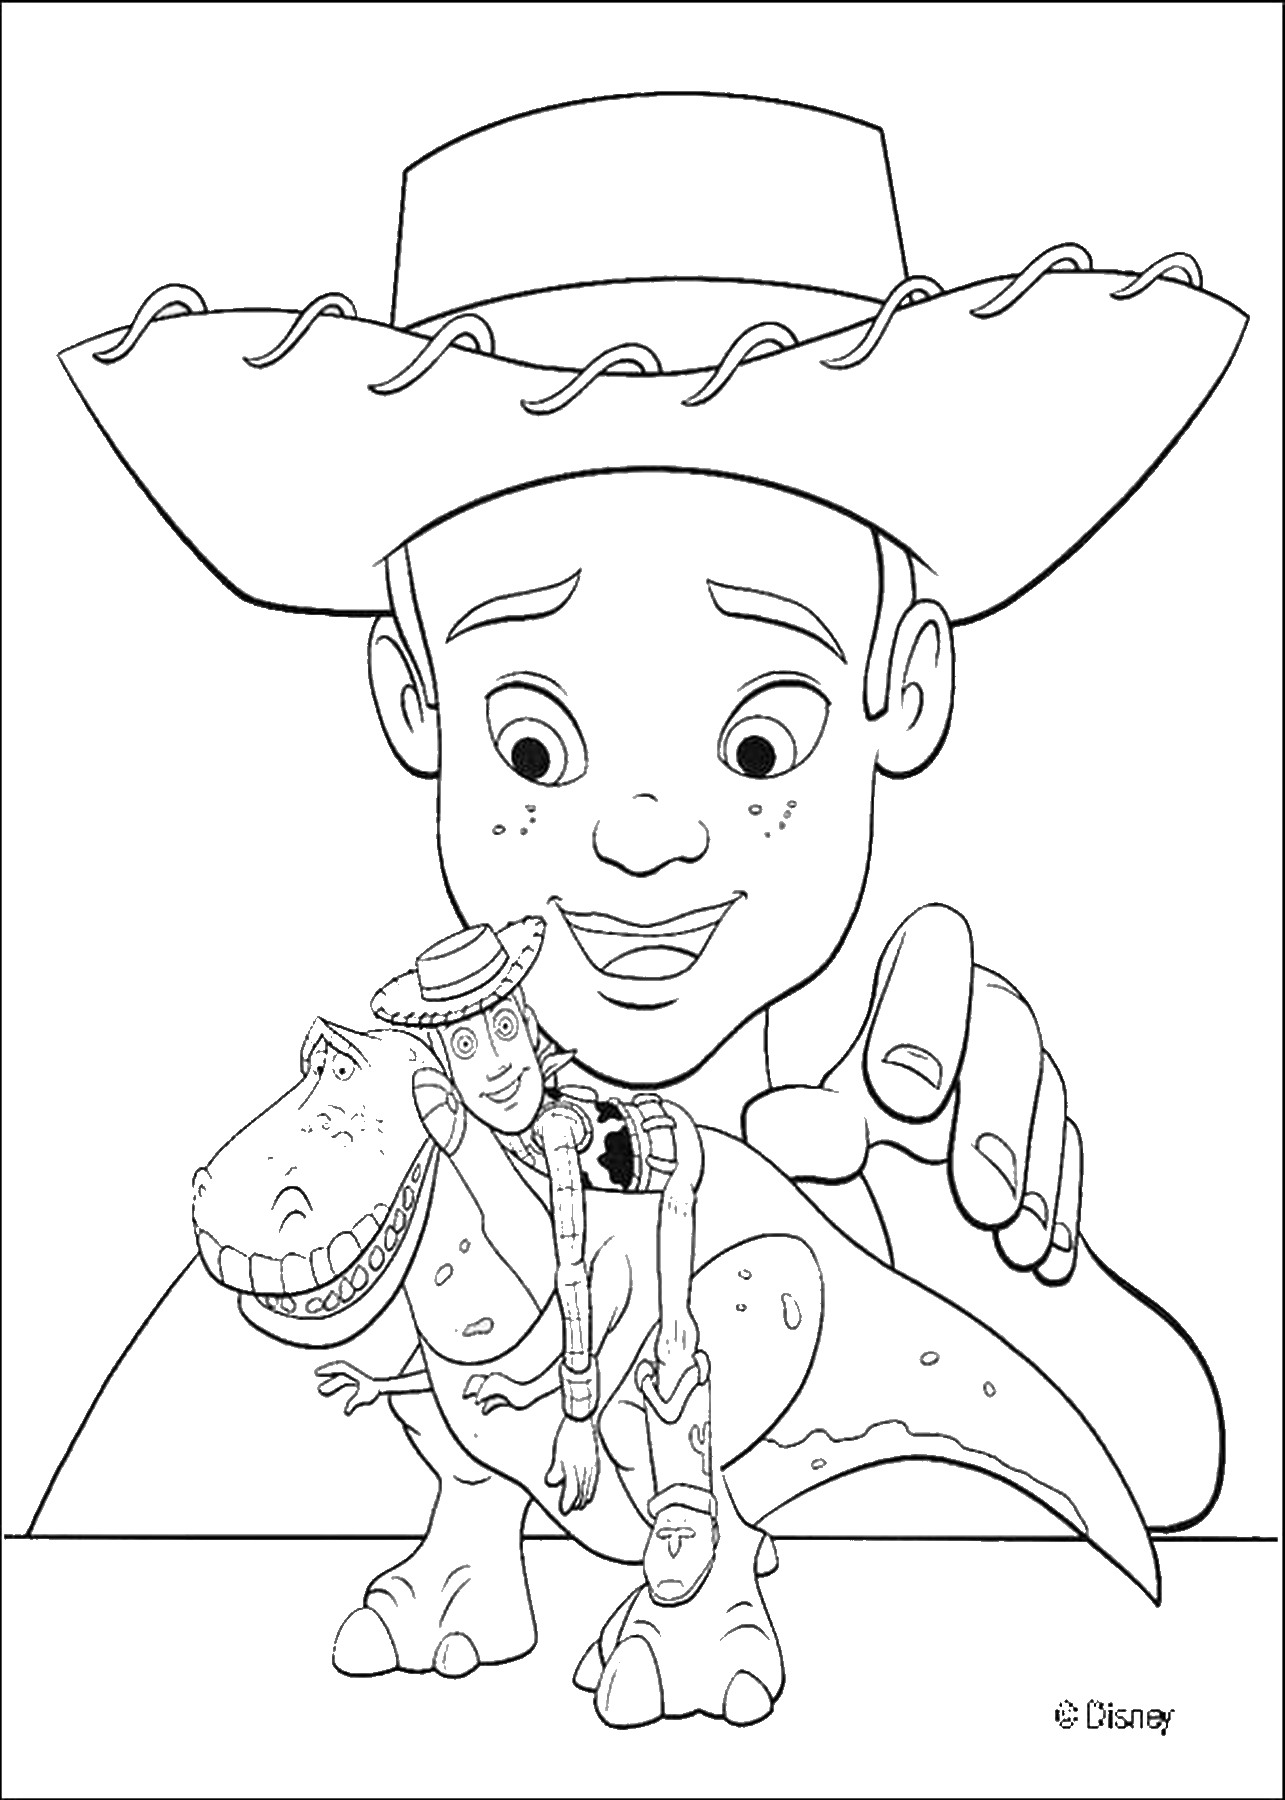 toy story 2 pictures to colour toy story coloring pages story colour pictures to toy 2